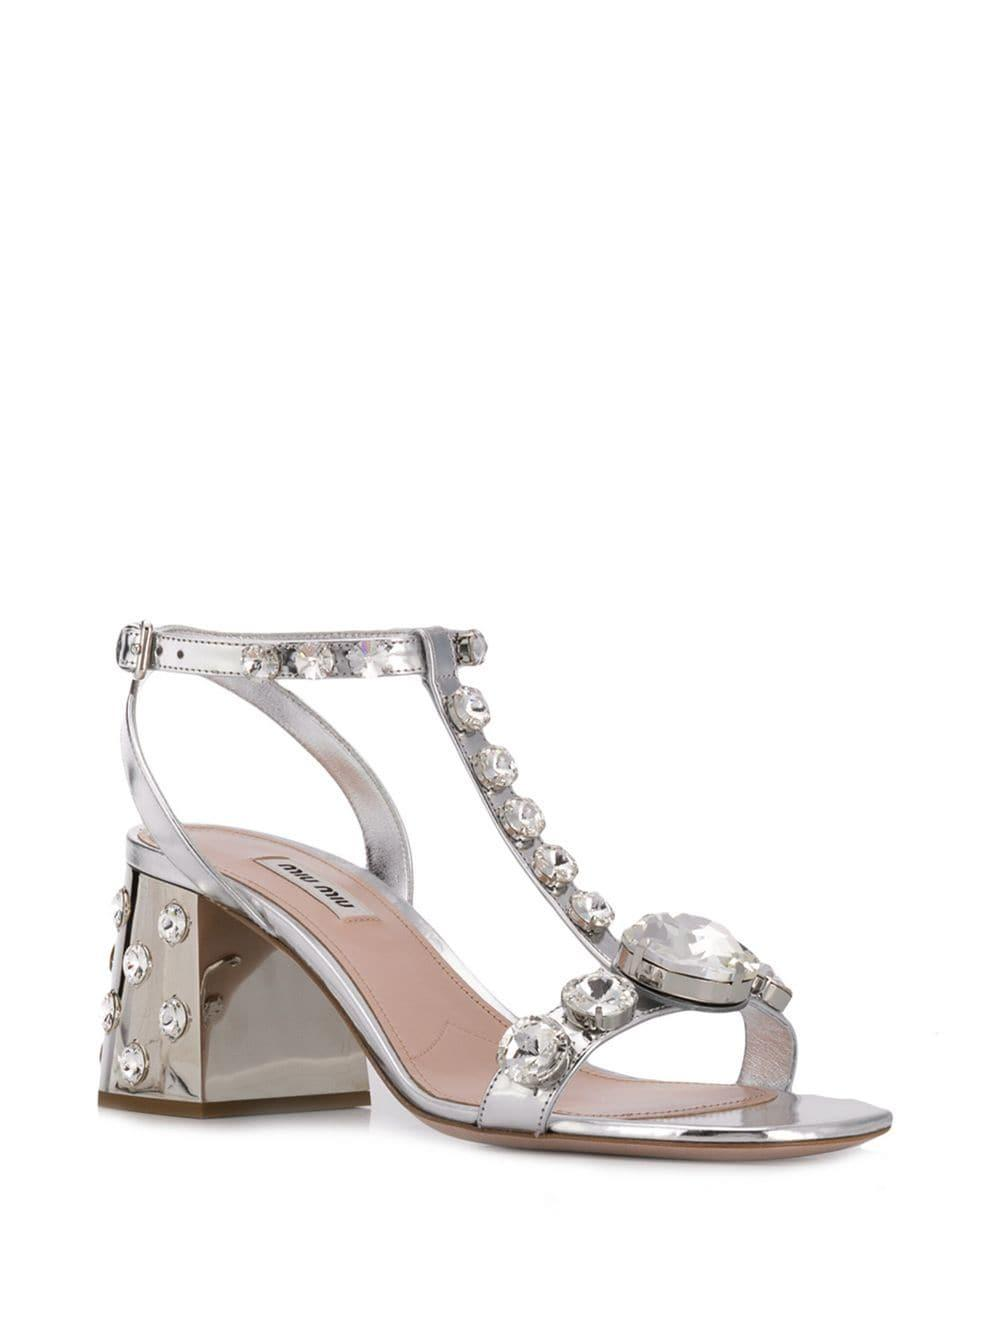 79db93d41 Lyst - Miu Miu Embellished Leather Sandals in Metallic - Save 32%